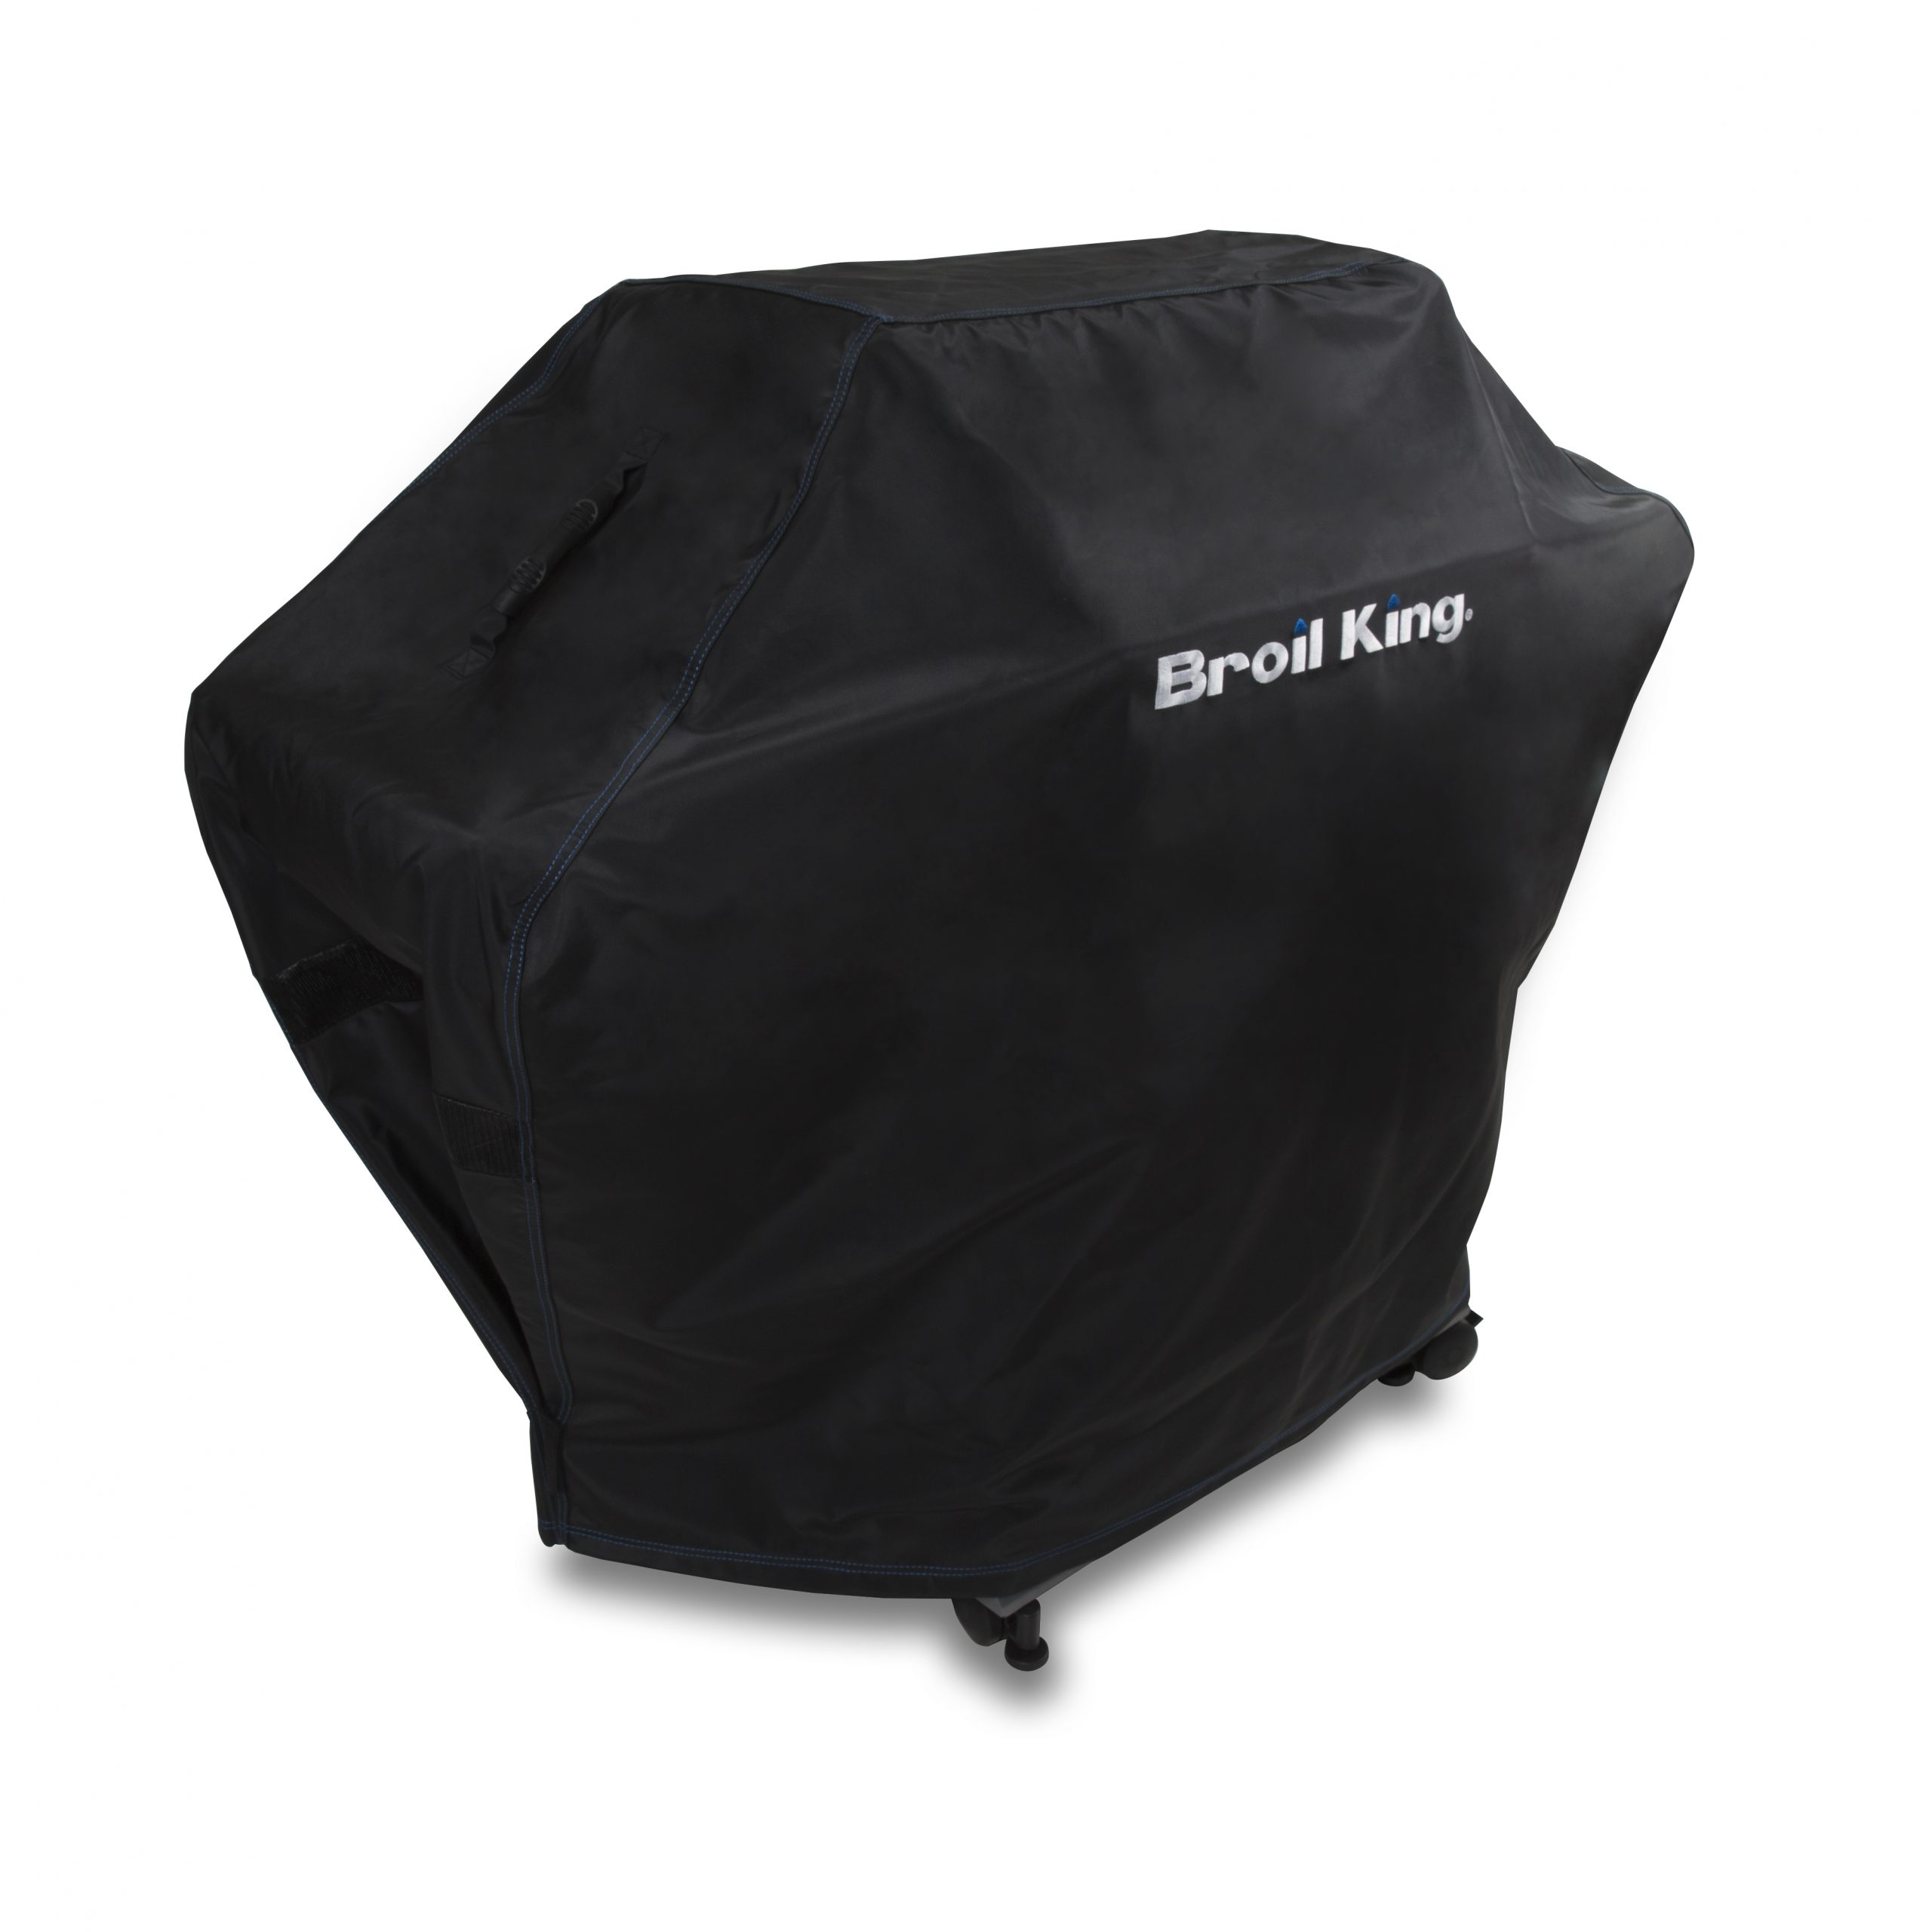 Broil King Grill Cover 68487